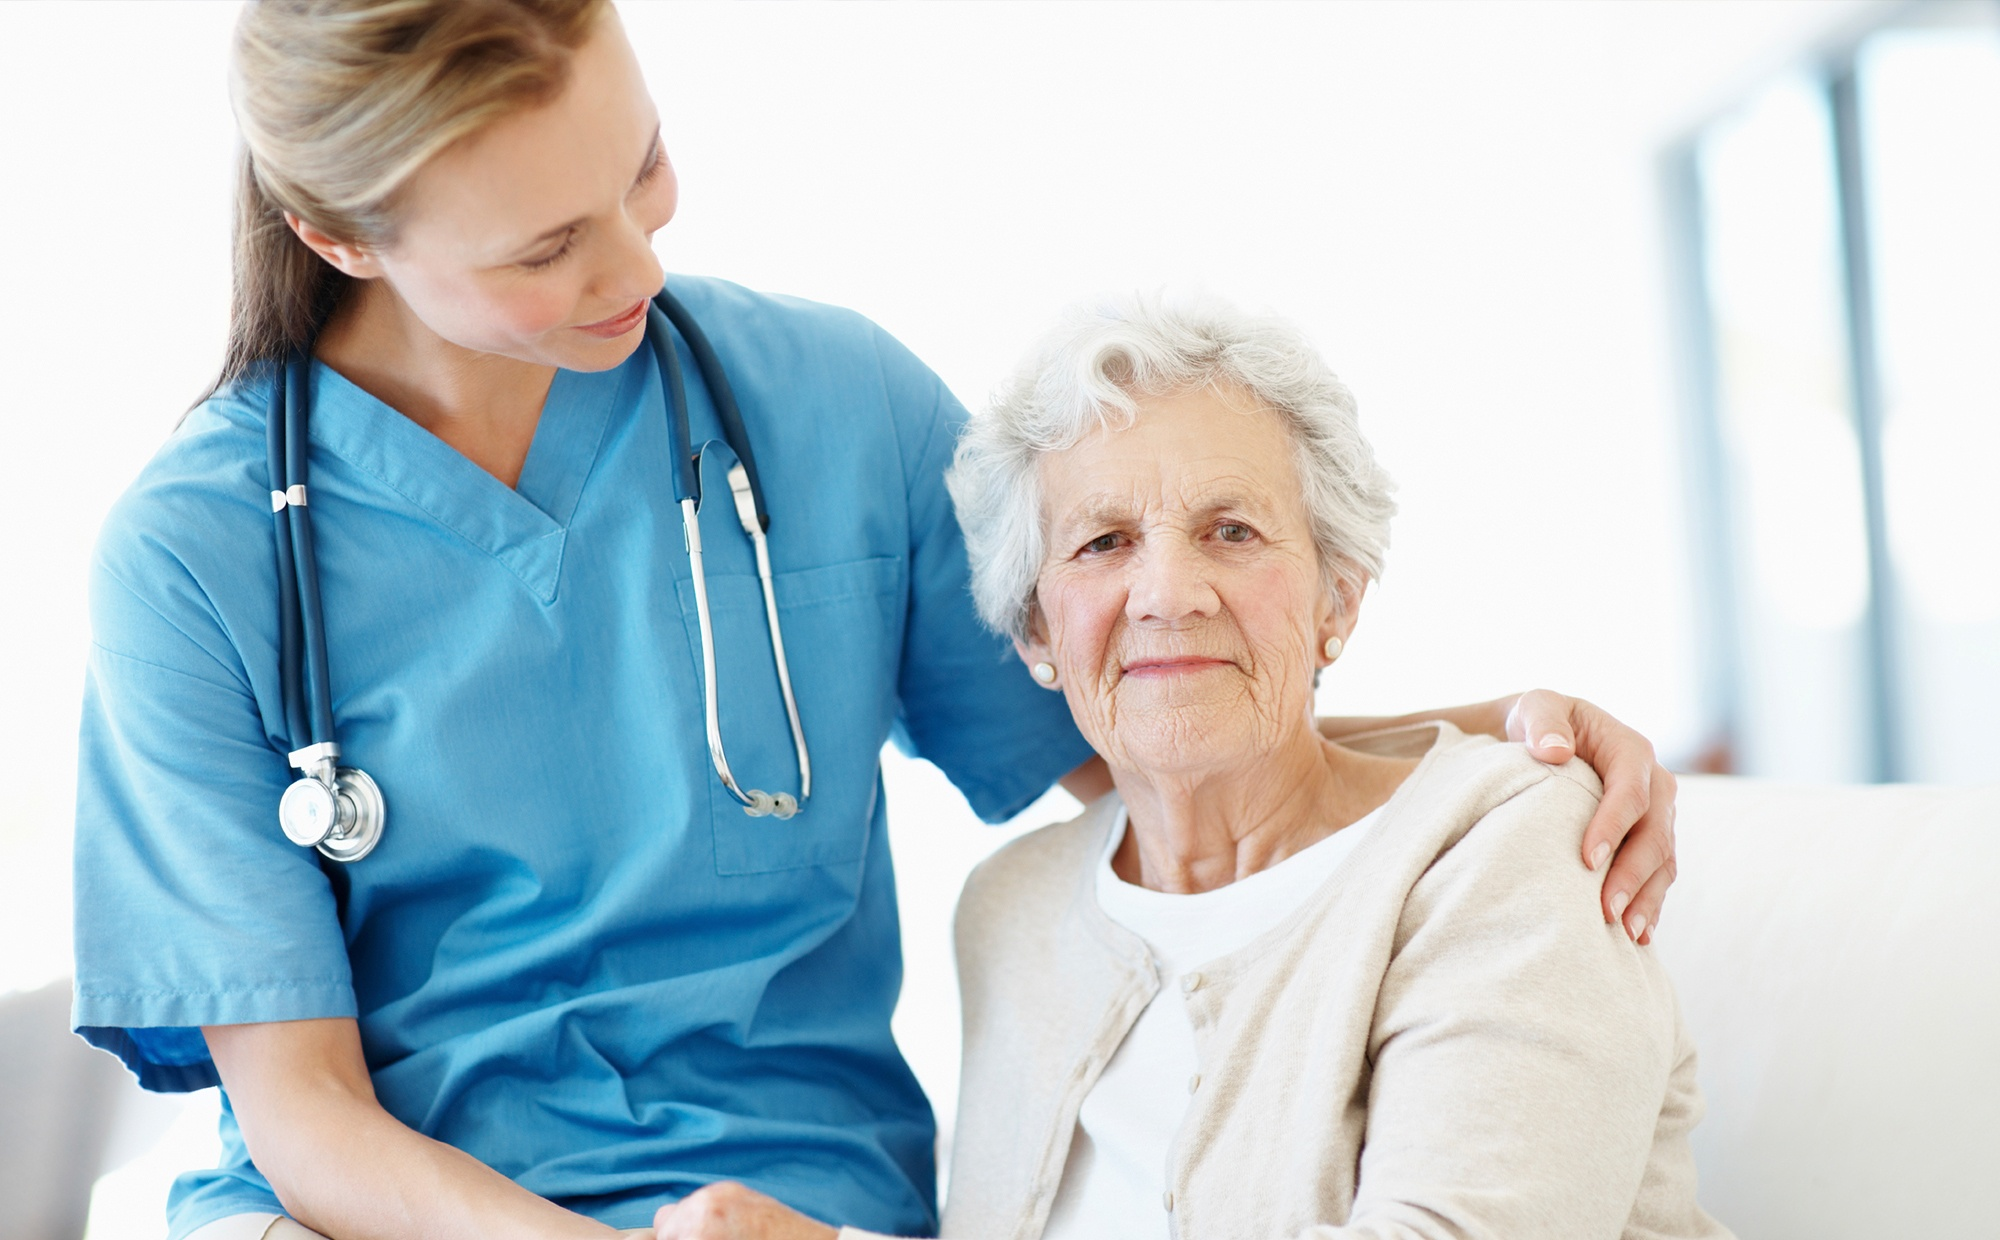 taking care of our elderly How to care for the elderly three parts: caring physically for the elderly caring mentally for the elderly dealing with resistance community q&a the most important part of caring for the elderly is to love them and keep them active.